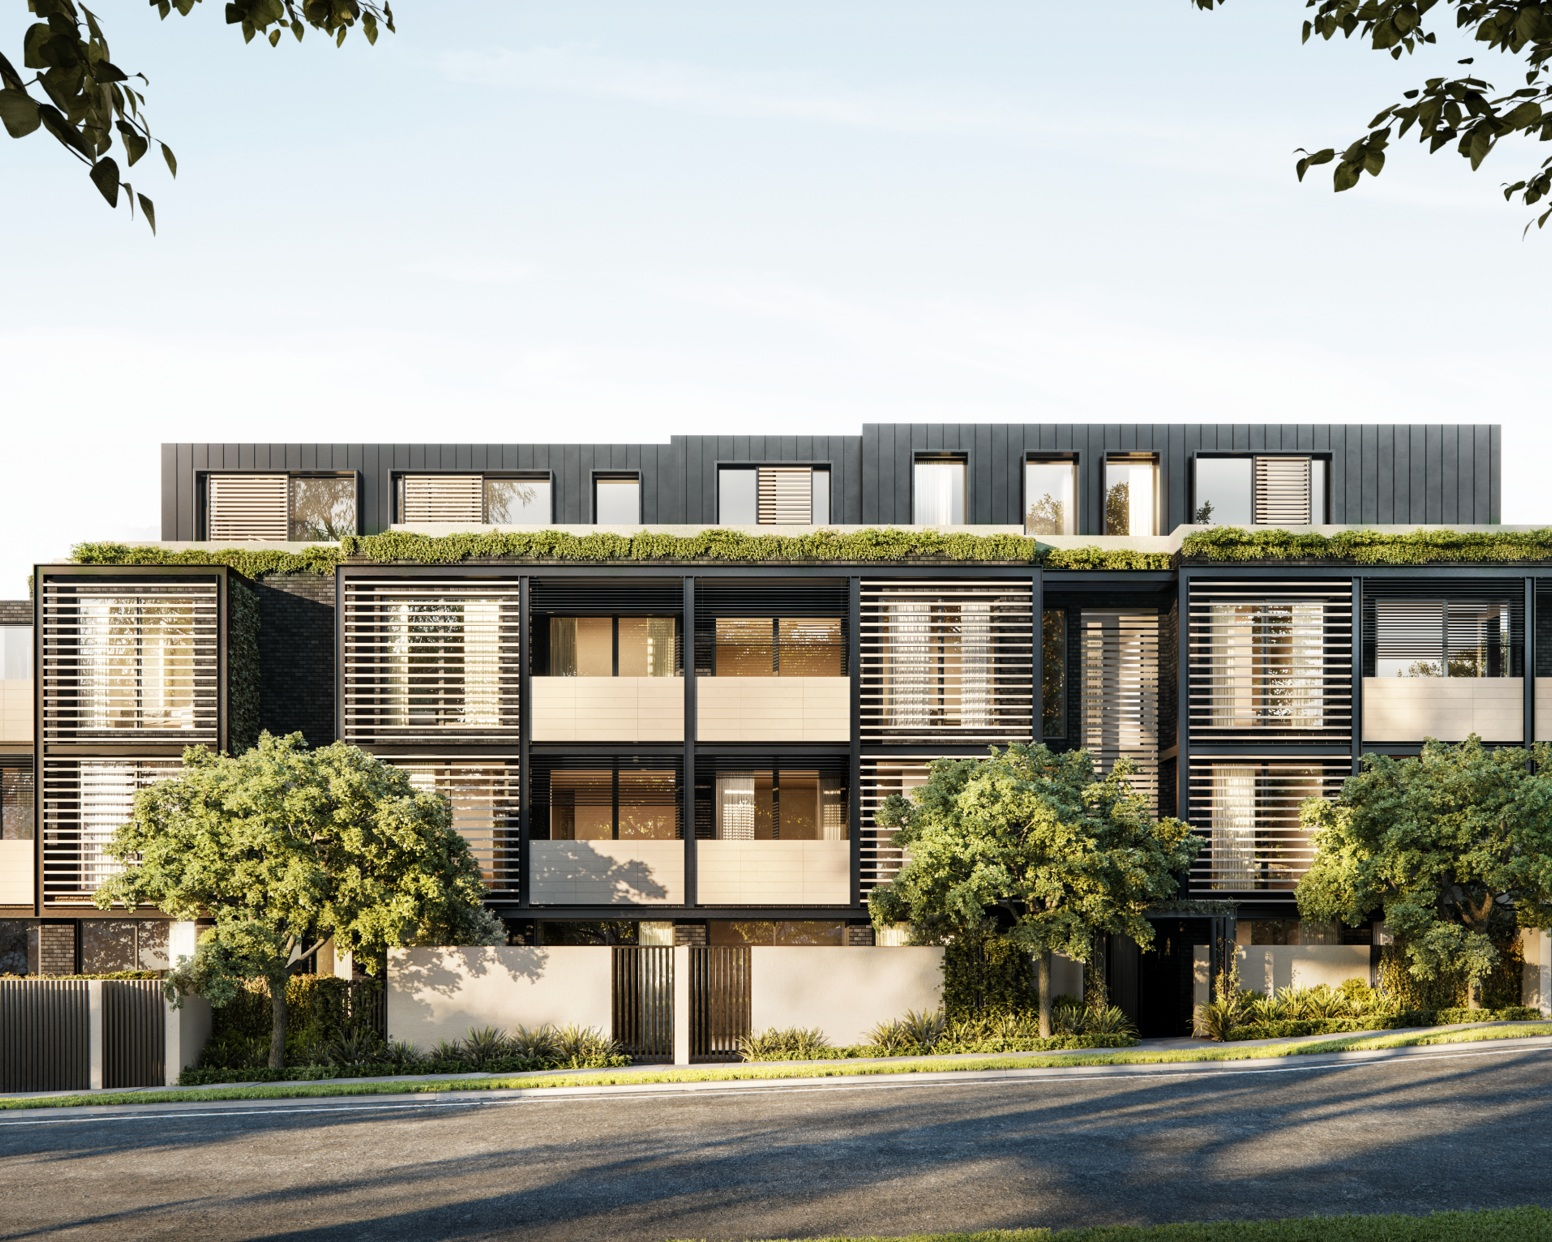 Glen IrisVictoria - The purpose of this $2,700,000 loan is to assist with the construction funding of a boutique apartment building in the affluent suburb of Glen Iris. The development had achieved 100% debt cover from presales prior to commencement.LVR • RETURN • TERM75% • 13% p.a. • 14 months